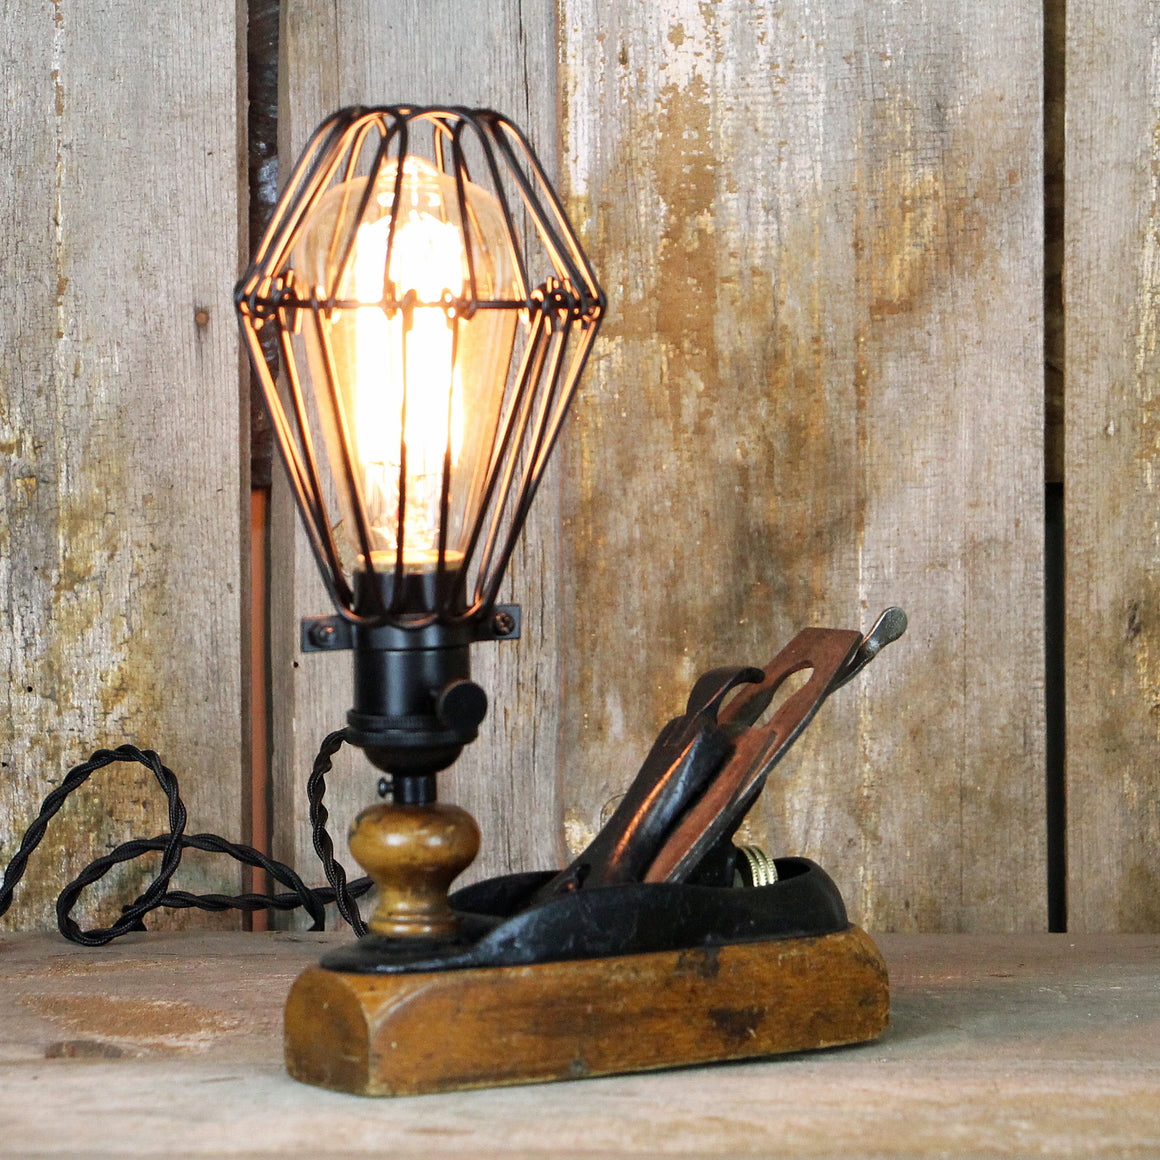 Unique Table Lamp - a Perfect Men's Gift - Wooden Plane Desk Lamp #330 - The Lighting Works